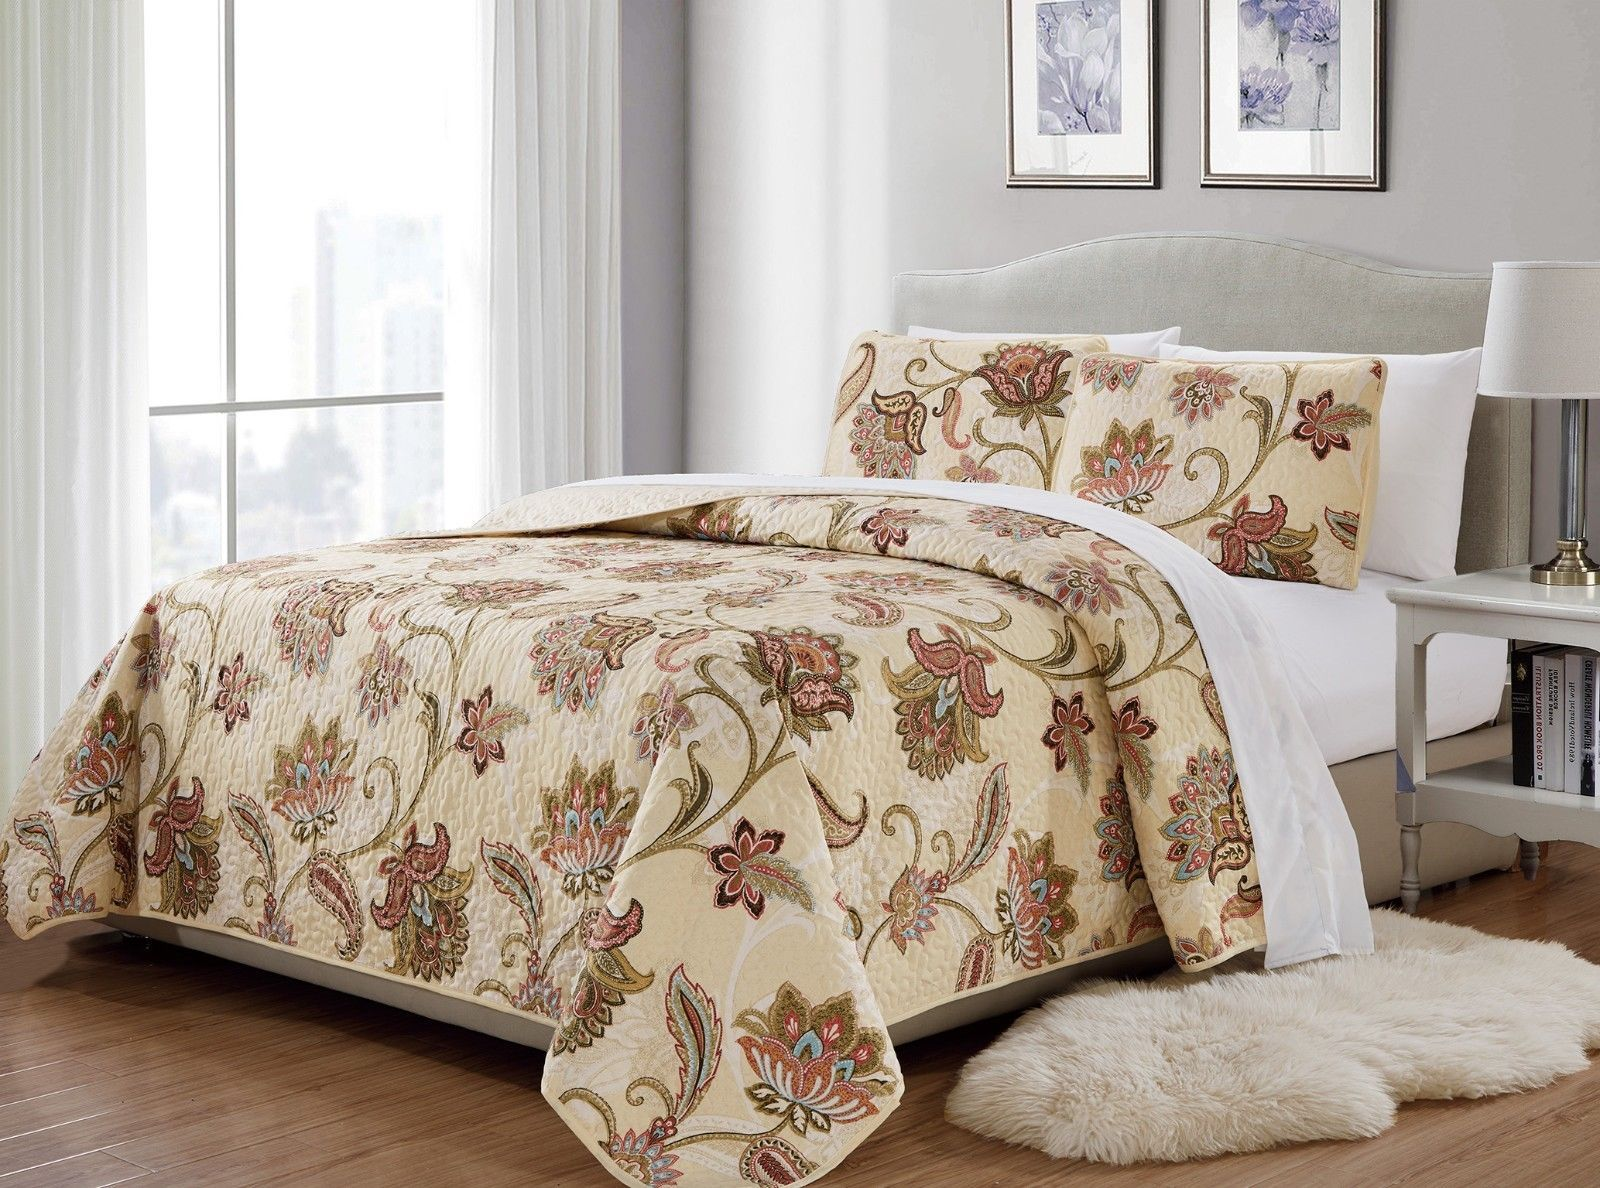 Fancy Linen 3pc King California King Bedspread Quilted Print Floral Beige Red Blue Taupe Over Size New Jane 64 Walmart Com Bed Spreads Bed Decor Luxury Bedspreads